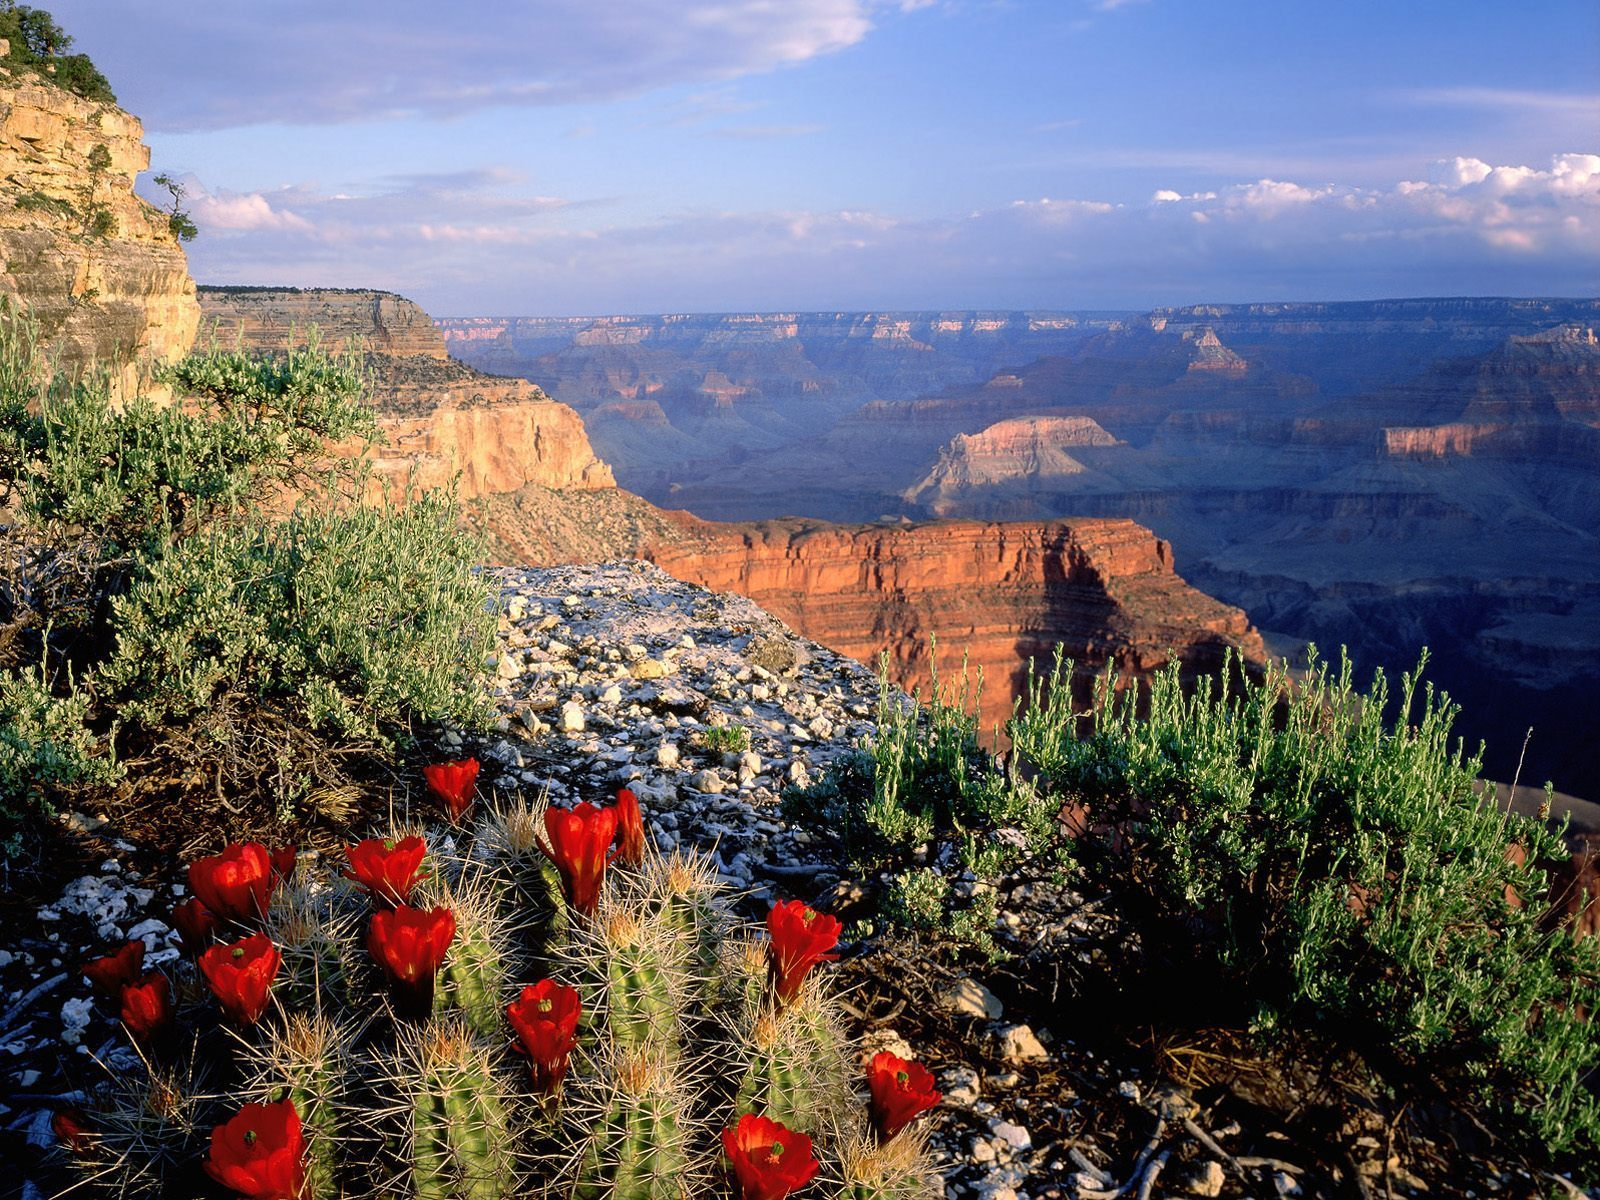 USA National Parks Images Usa National Parks HD Wallpaper And - National parks in usa